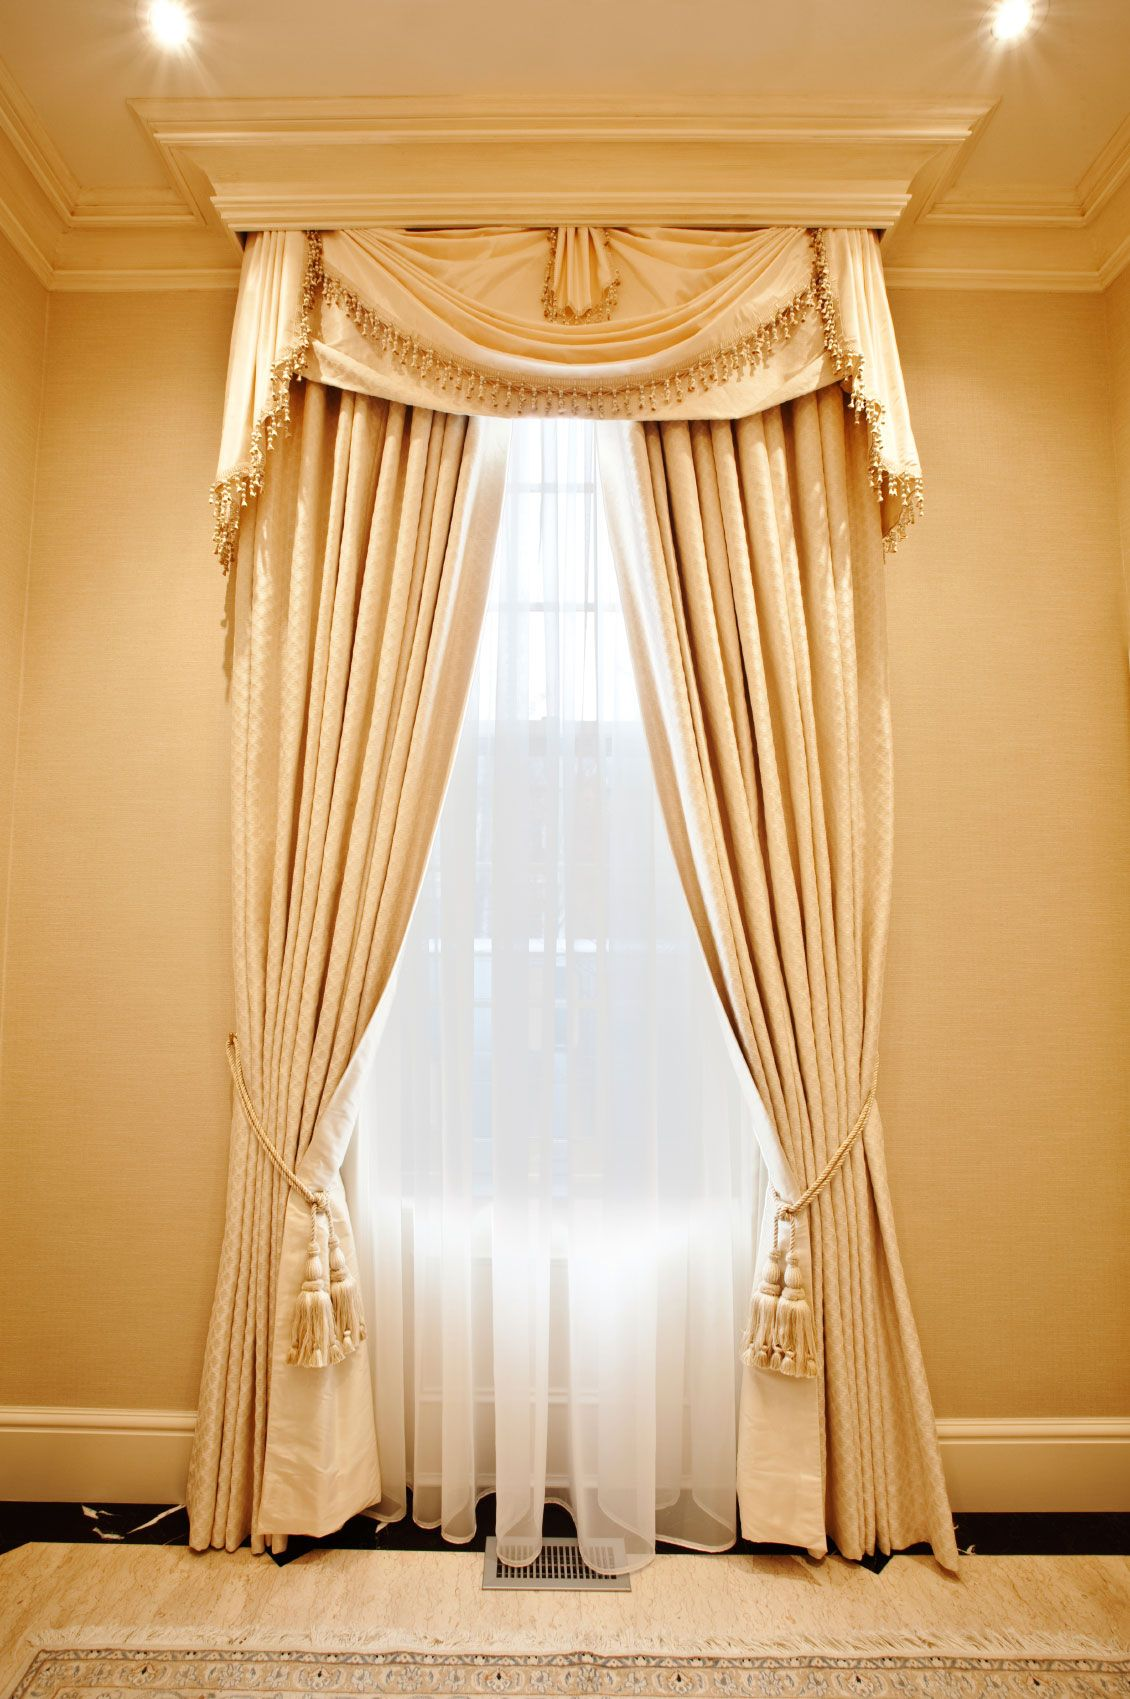 Home Decor Ideas Curtain Ideas To Enhance The Beauty